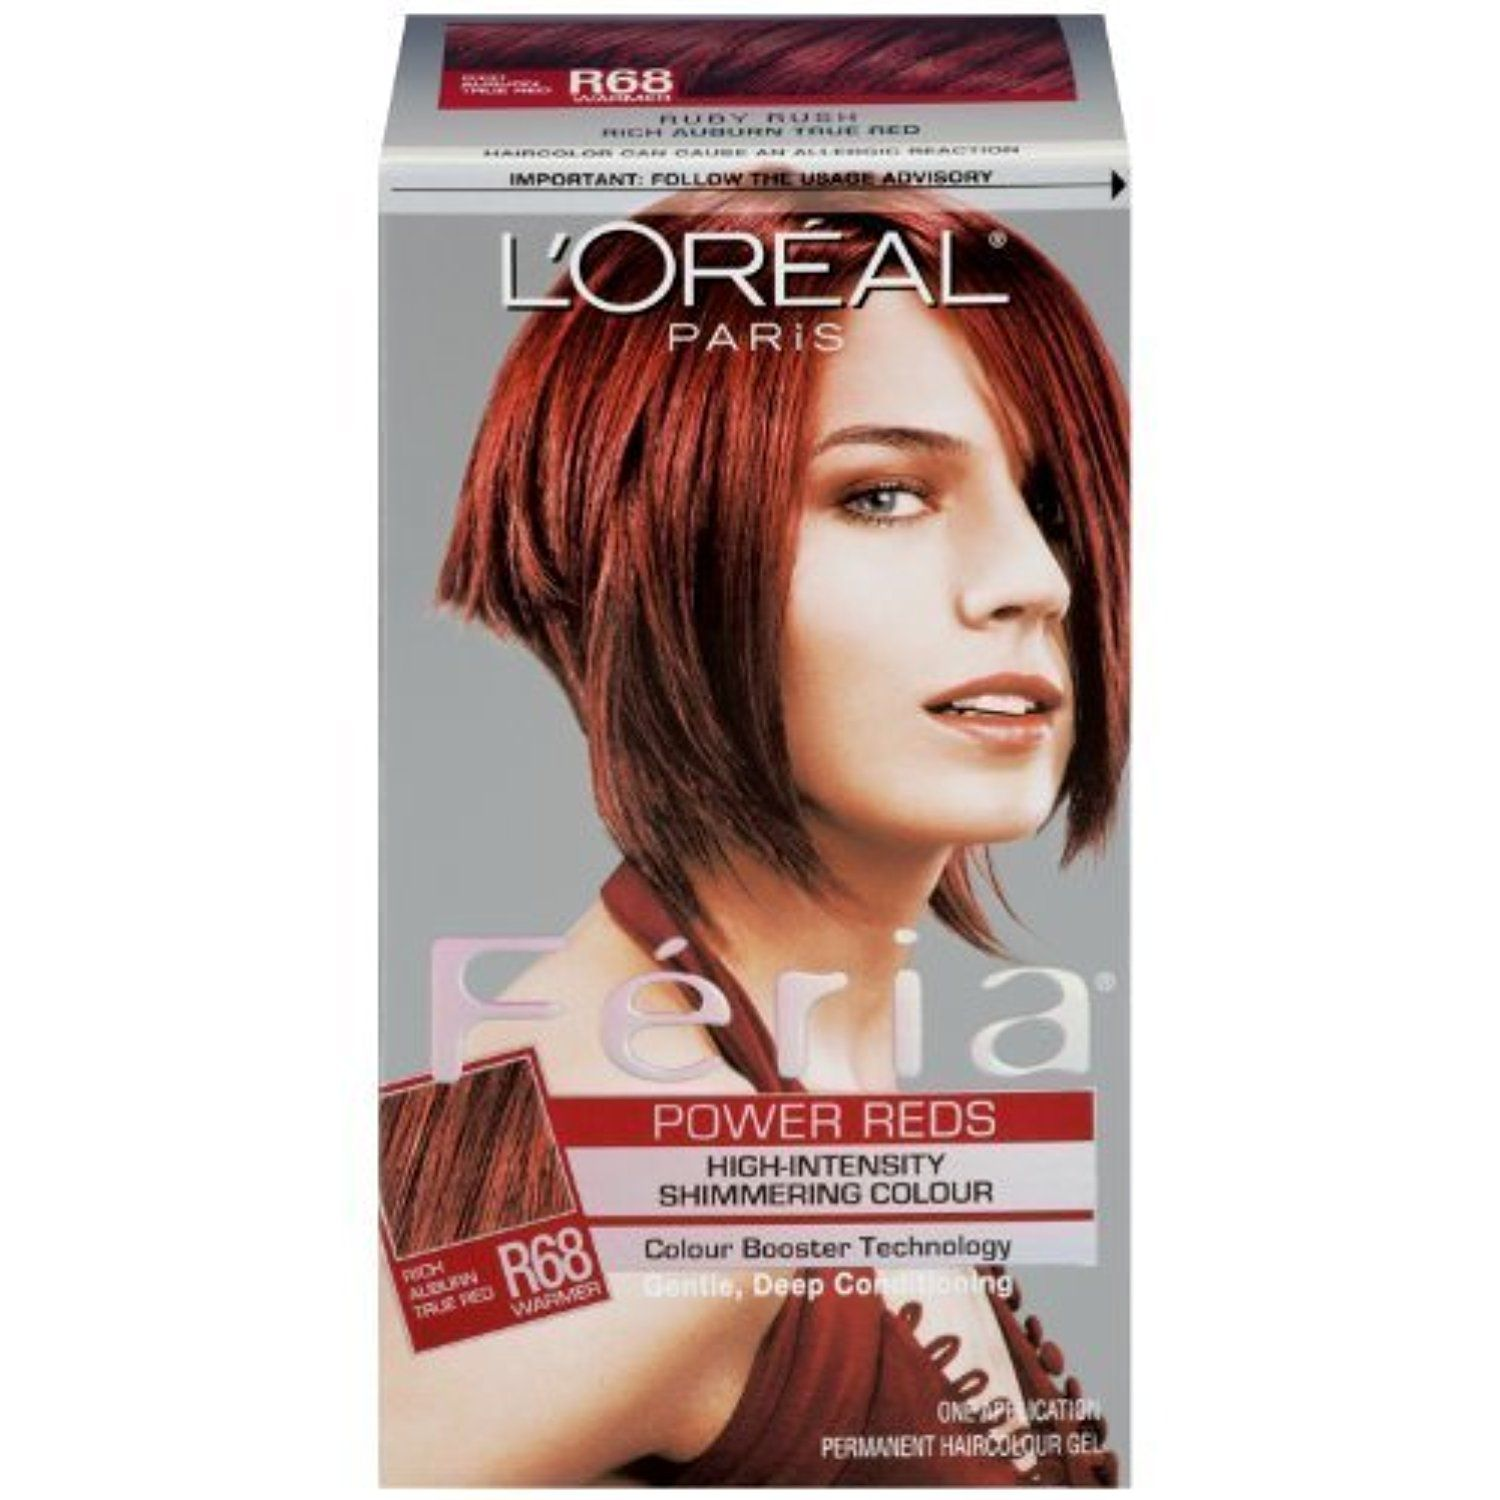 Feria Personalcare Hair Color Shimmering Color How To Make Hair